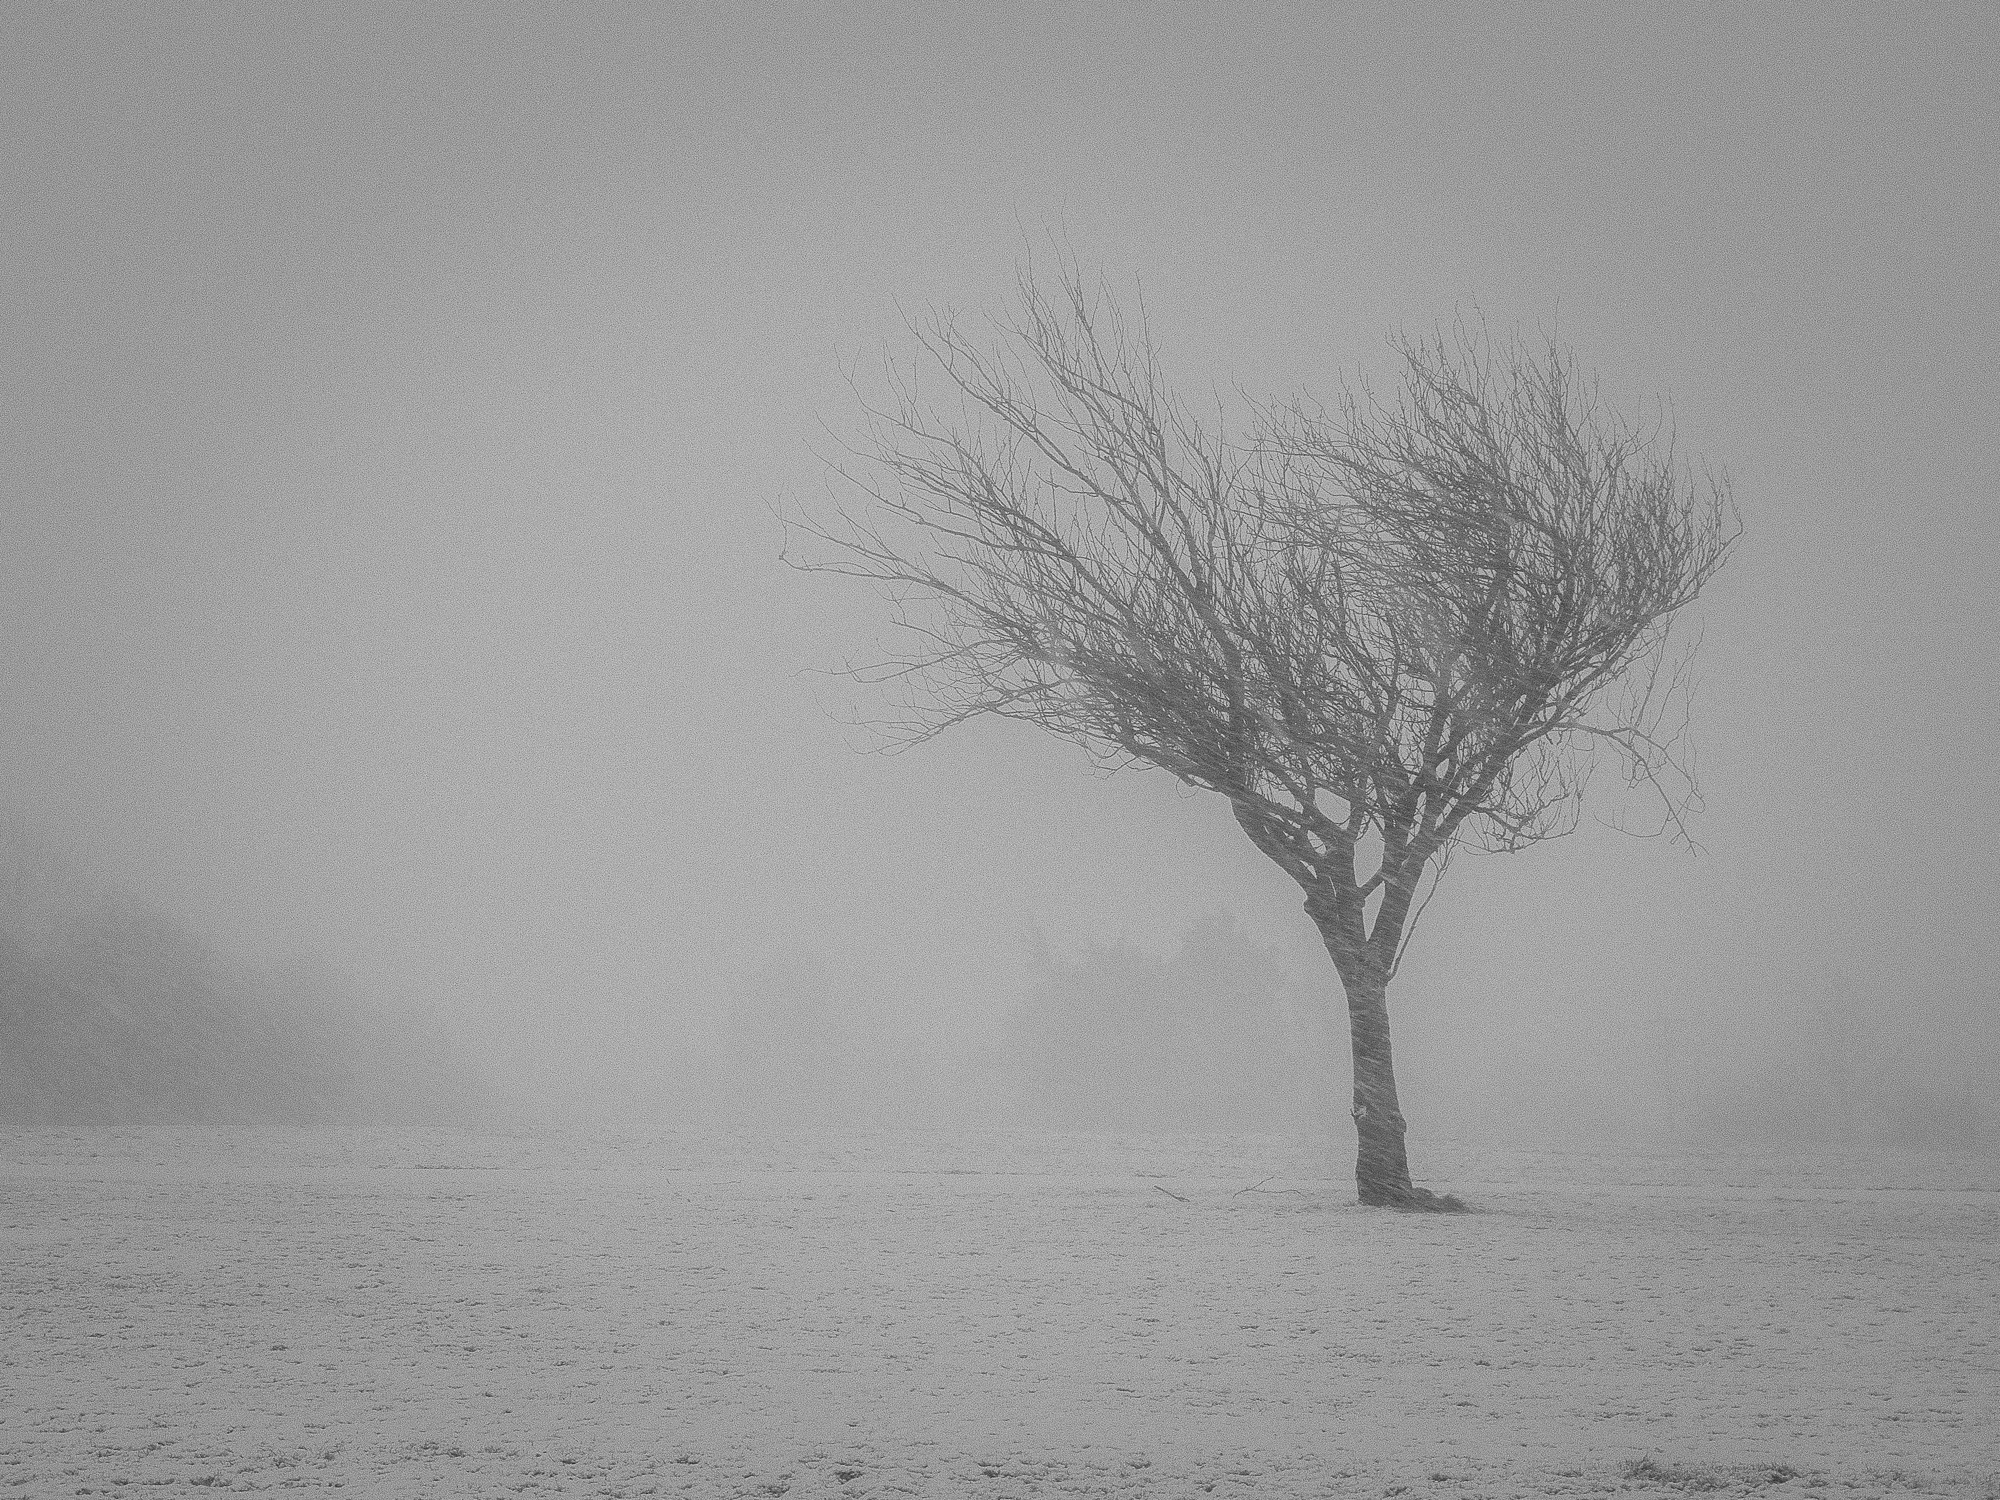 A cold Easterly wind blows through a bare shivering tree in a Cork City park